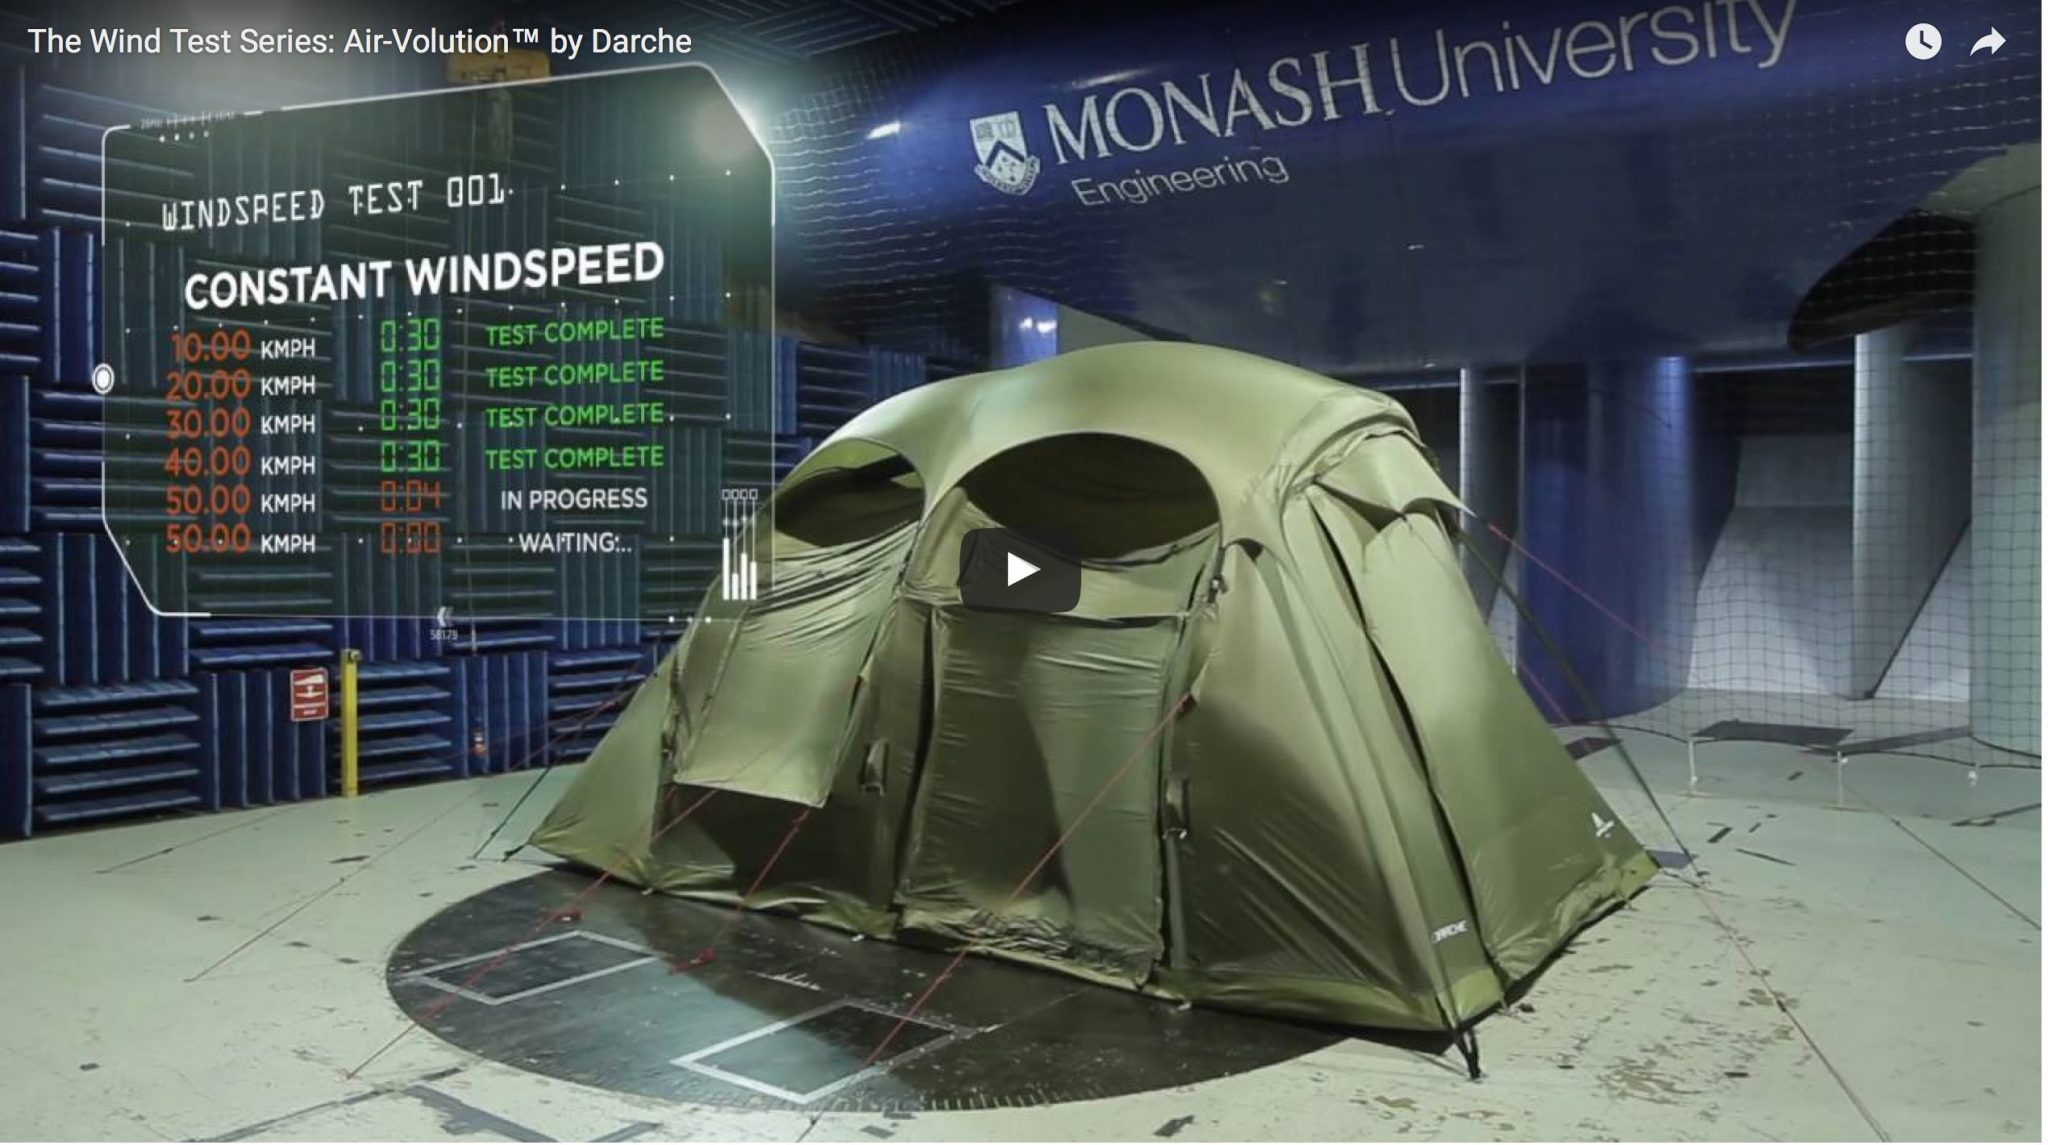 Watch this tent get hammered by gale-force winds.